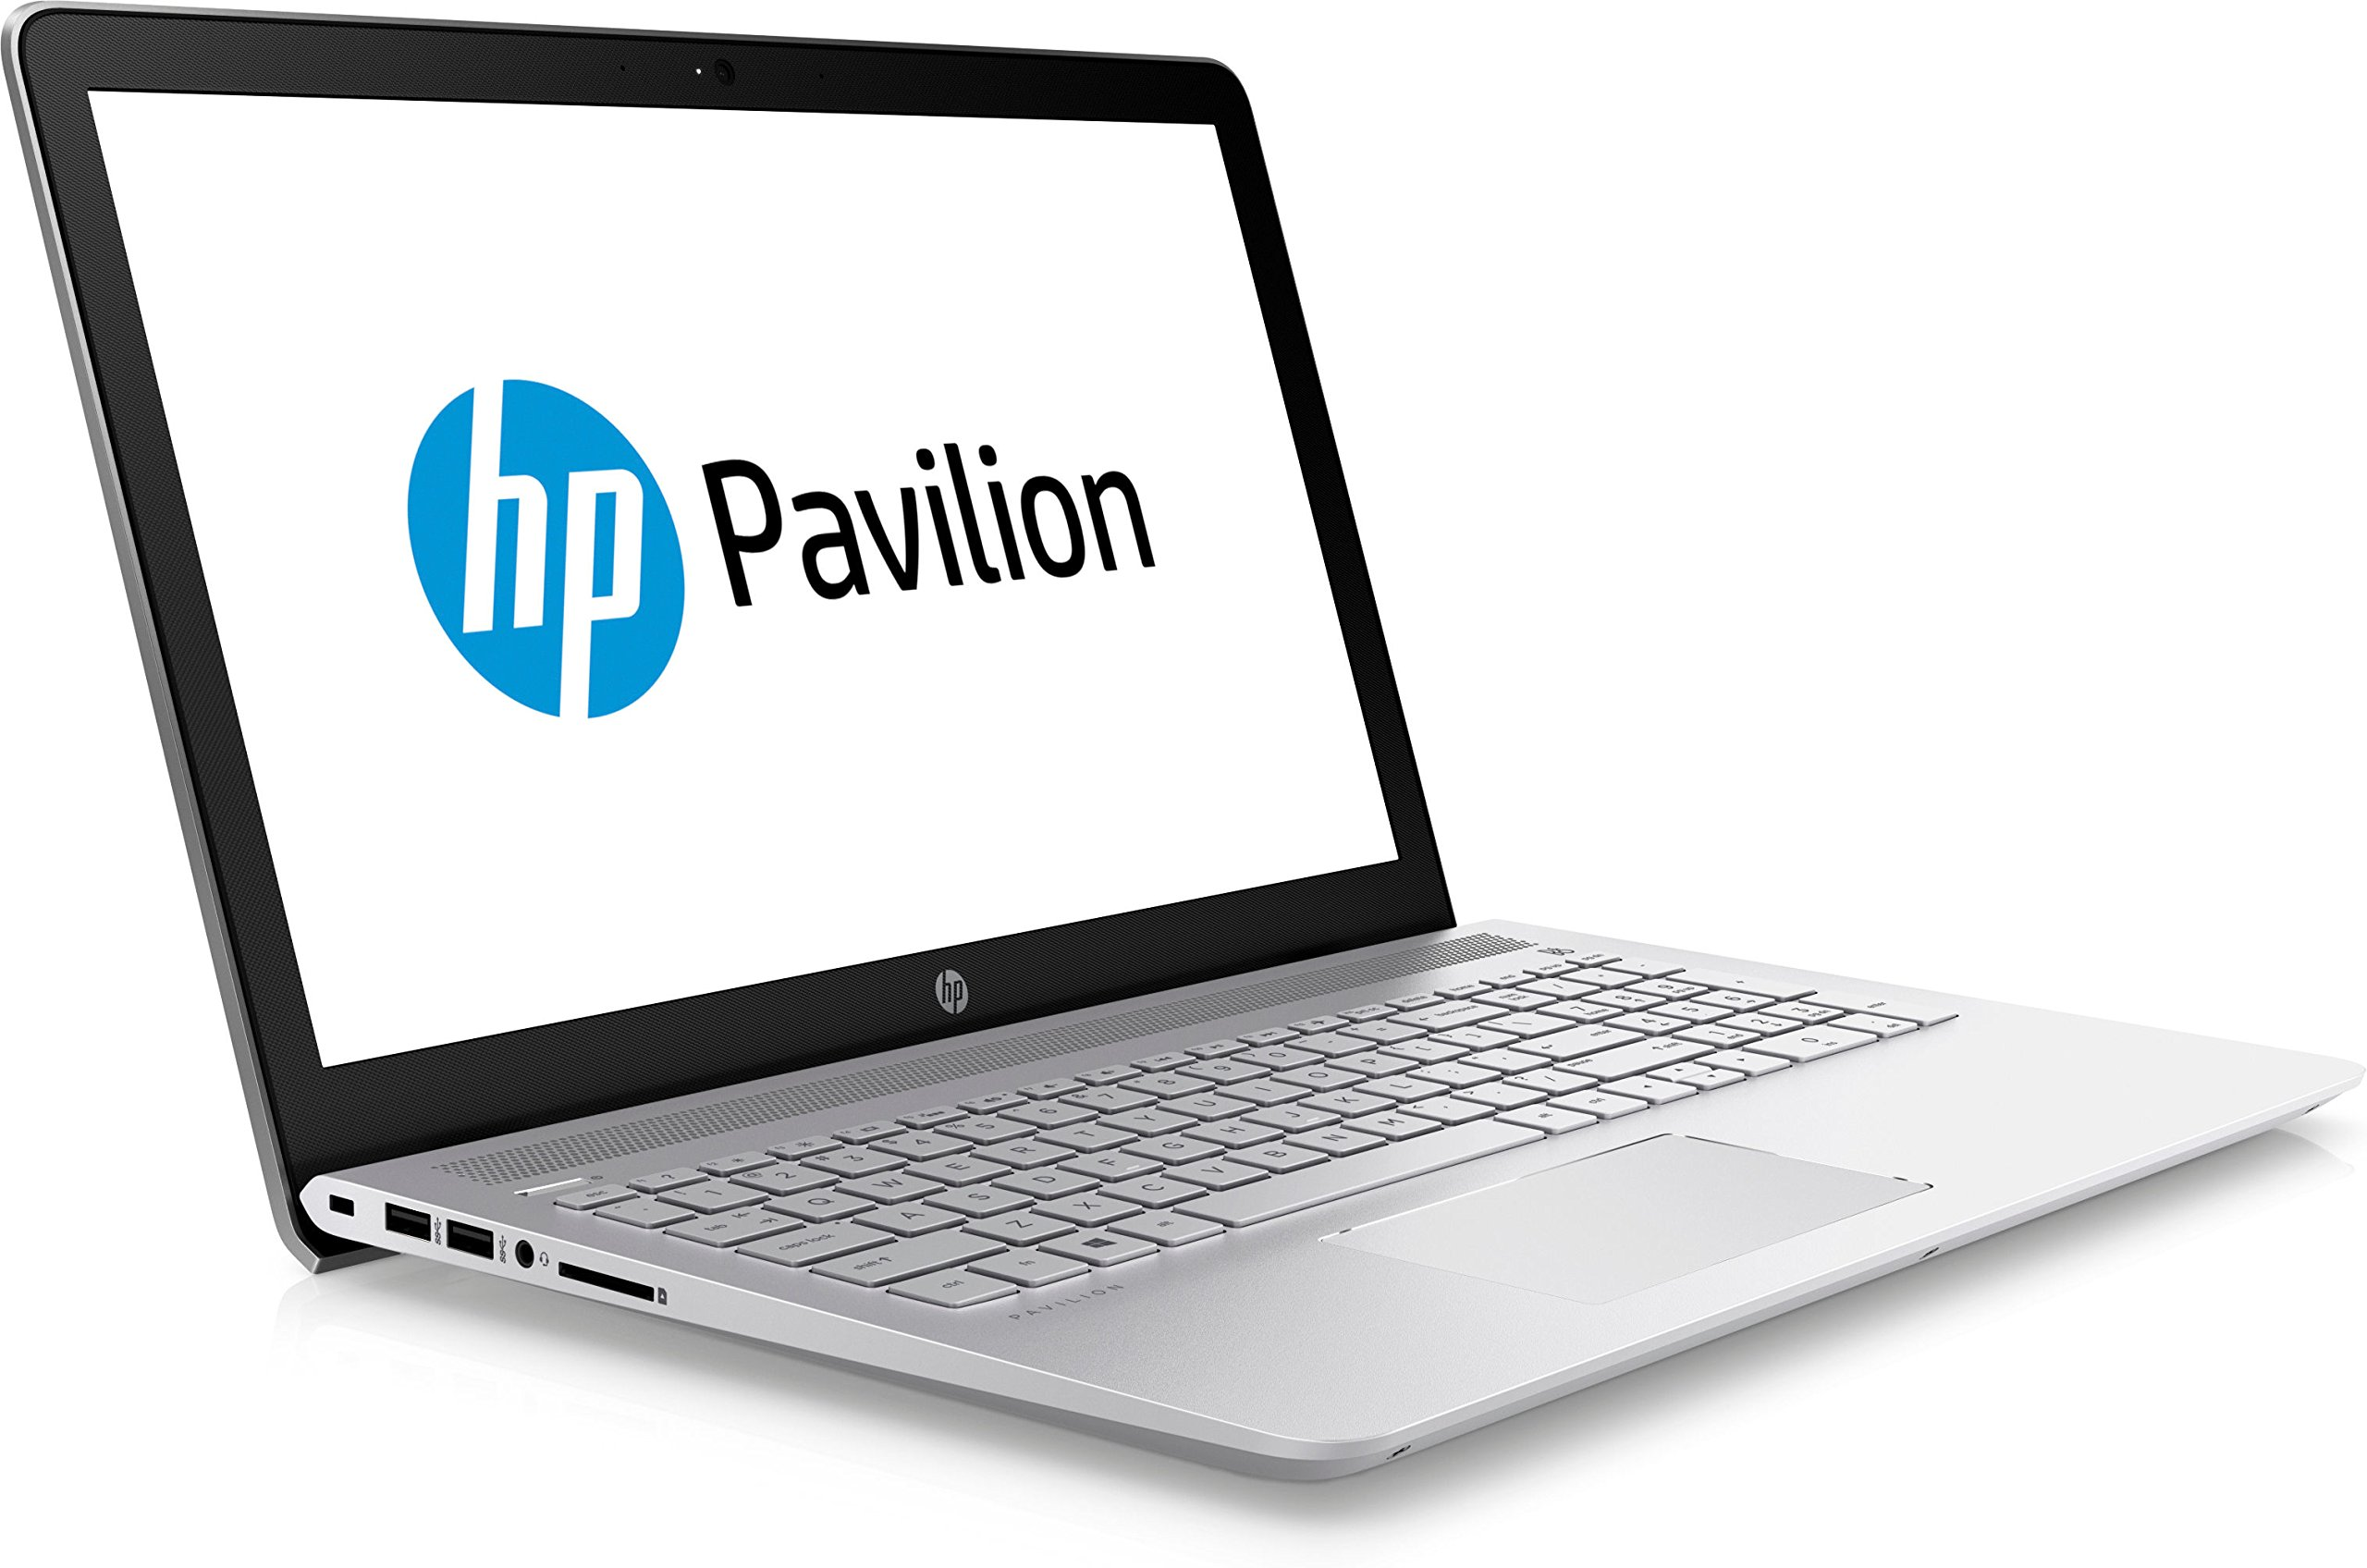 2017 HP Pavilion Business Flagship Laptop PC 15.6'' Full HD IPS WLED-backlit Display Intel i7-7500U Processor 12GB DDR4 Memory 1TB HDD Backlit-Keyboard Bluetooth Webcam B&O Audio Windows 10-Gray by HP (Image #3)